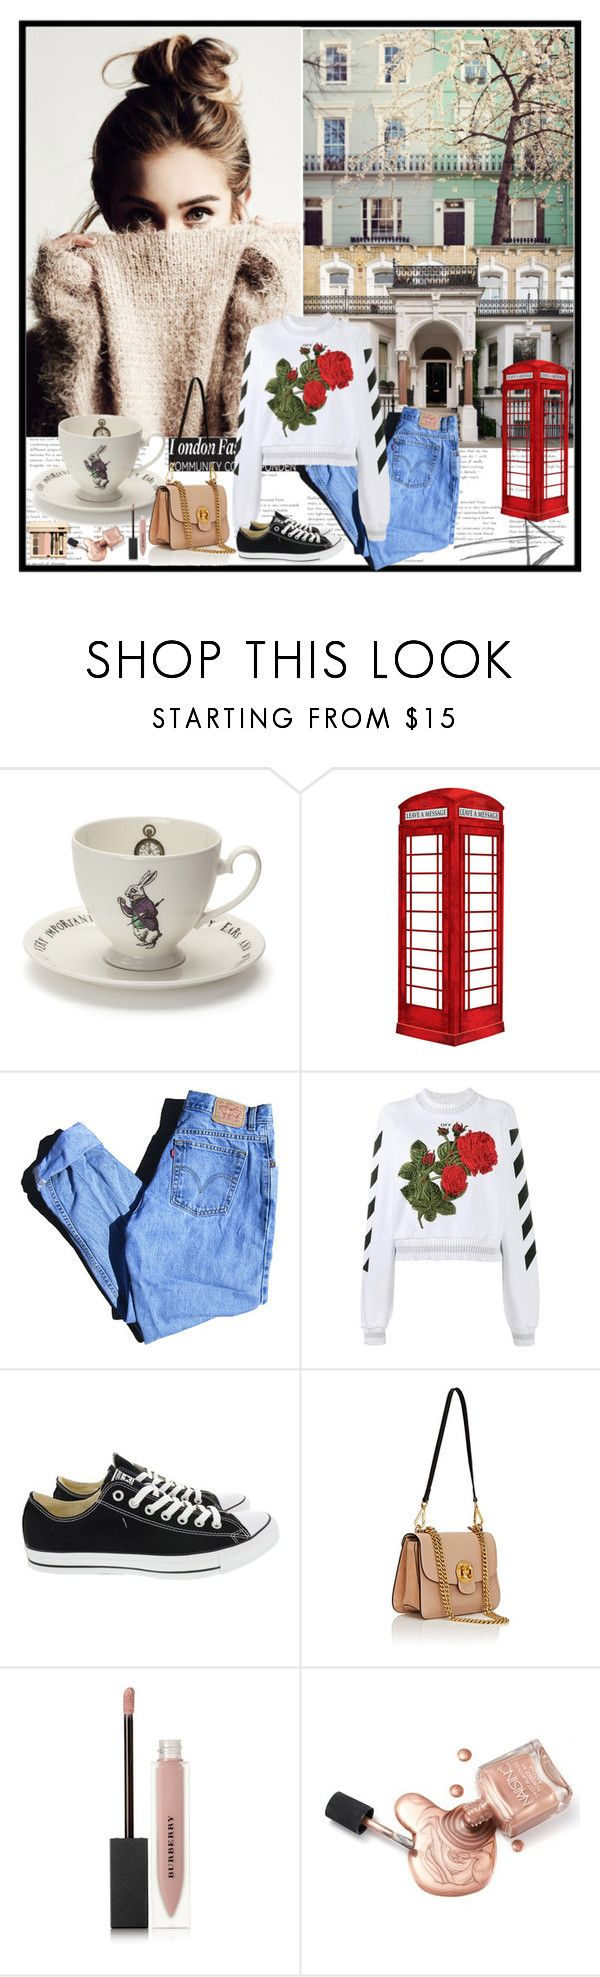 """""""Untitled #731"""" by im-a-daydreamer ❤ liked on Polyvore featuring Mrs Moore, jcp, Levi's, Off-White, Converse, Chloé and Burberry"""